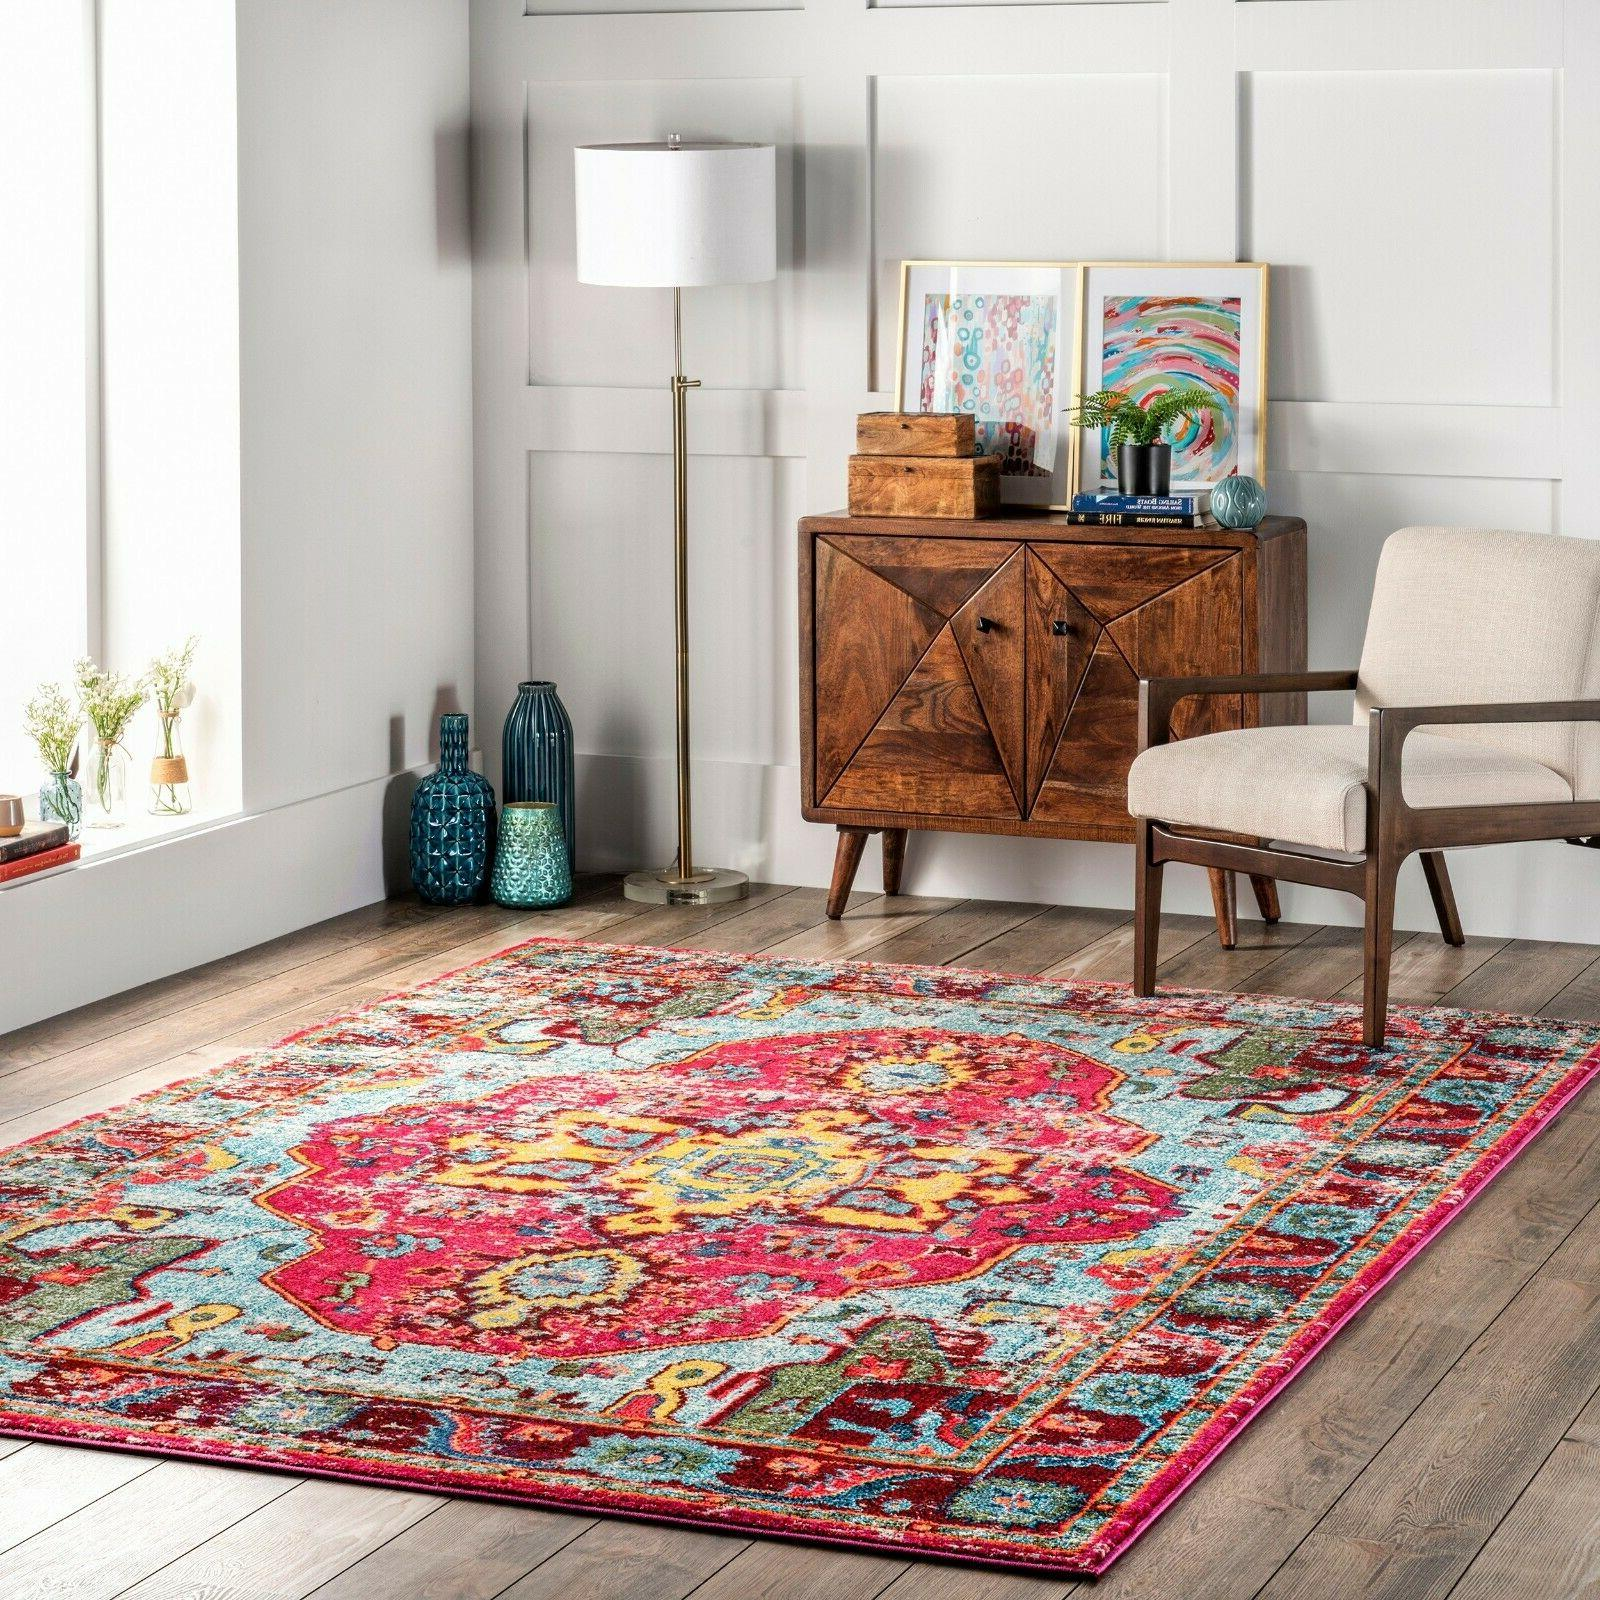 traditional vintage distressed area rug in multi